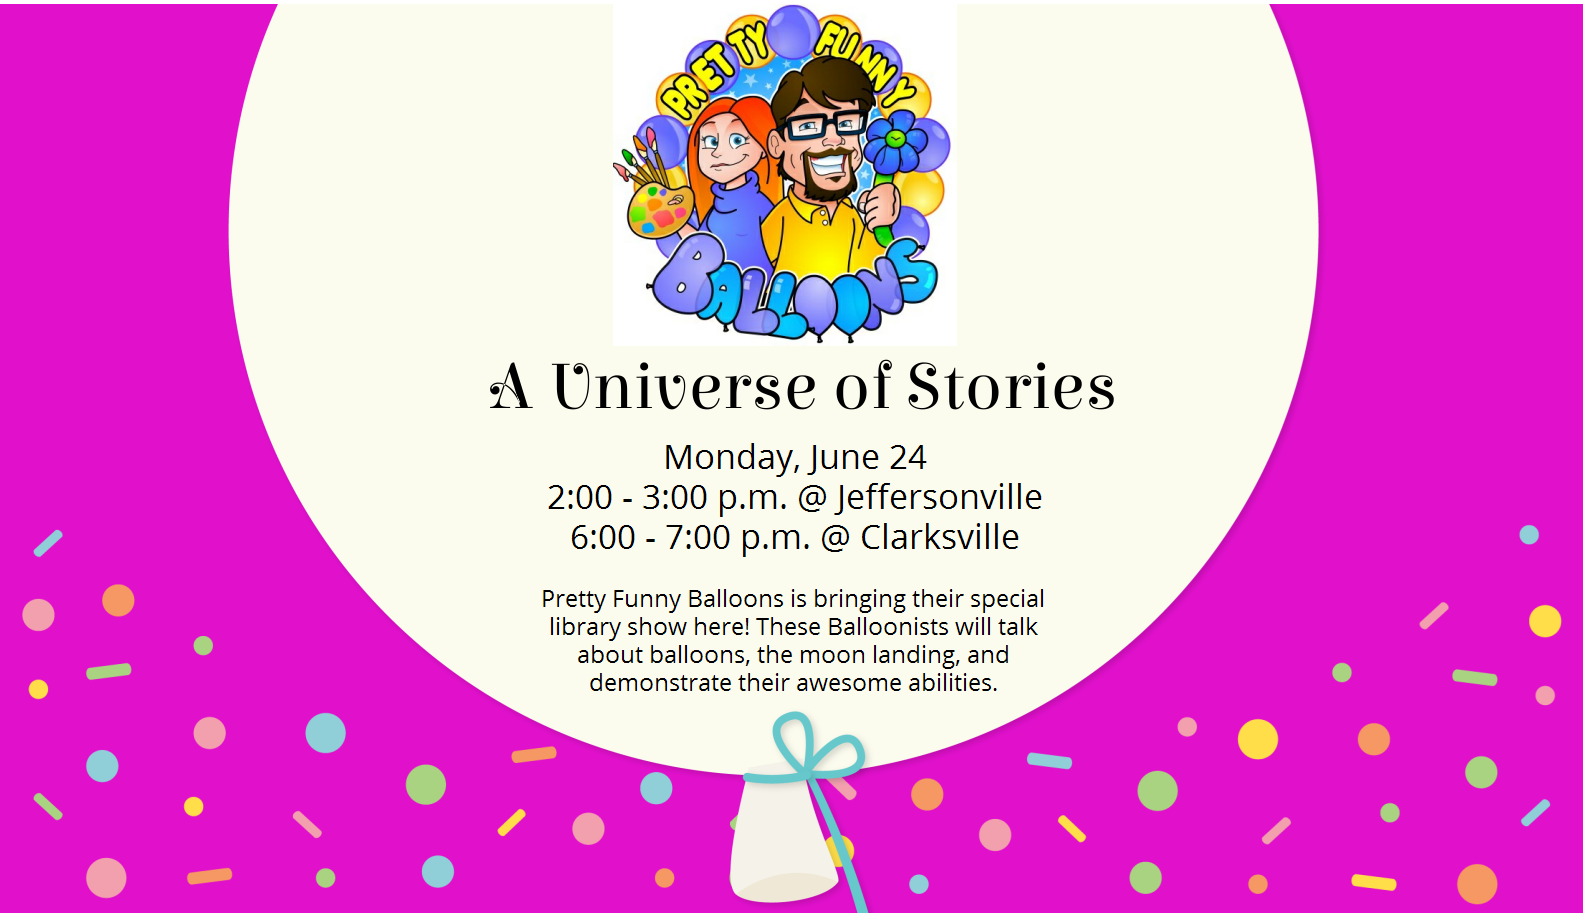 Flyer for A Universe of Stories program for kids